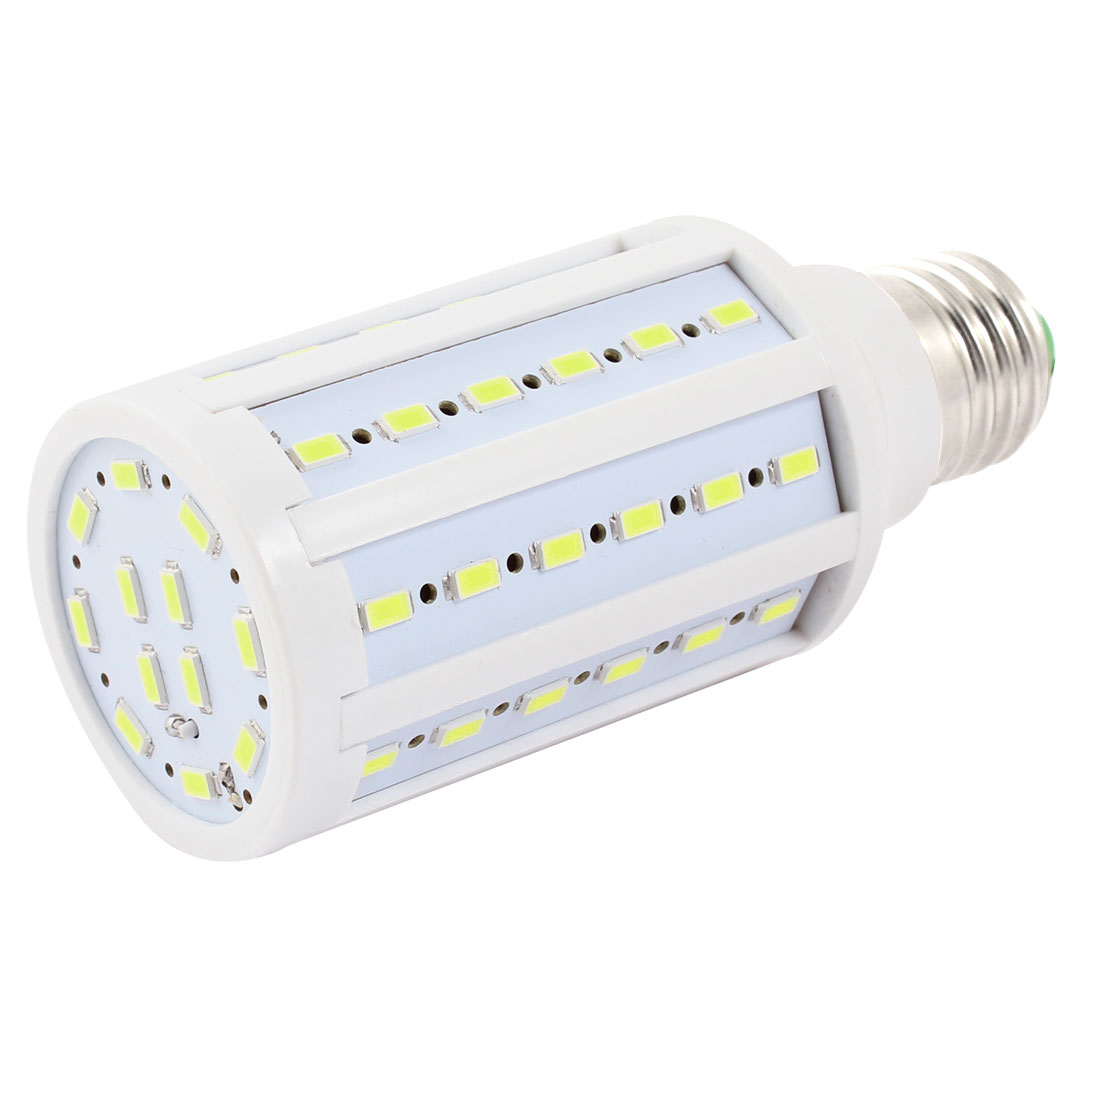 Energy Saving E27 Base Pure White 60 SMD 5630 LED Bulb Lamp 15W AC 110/220V